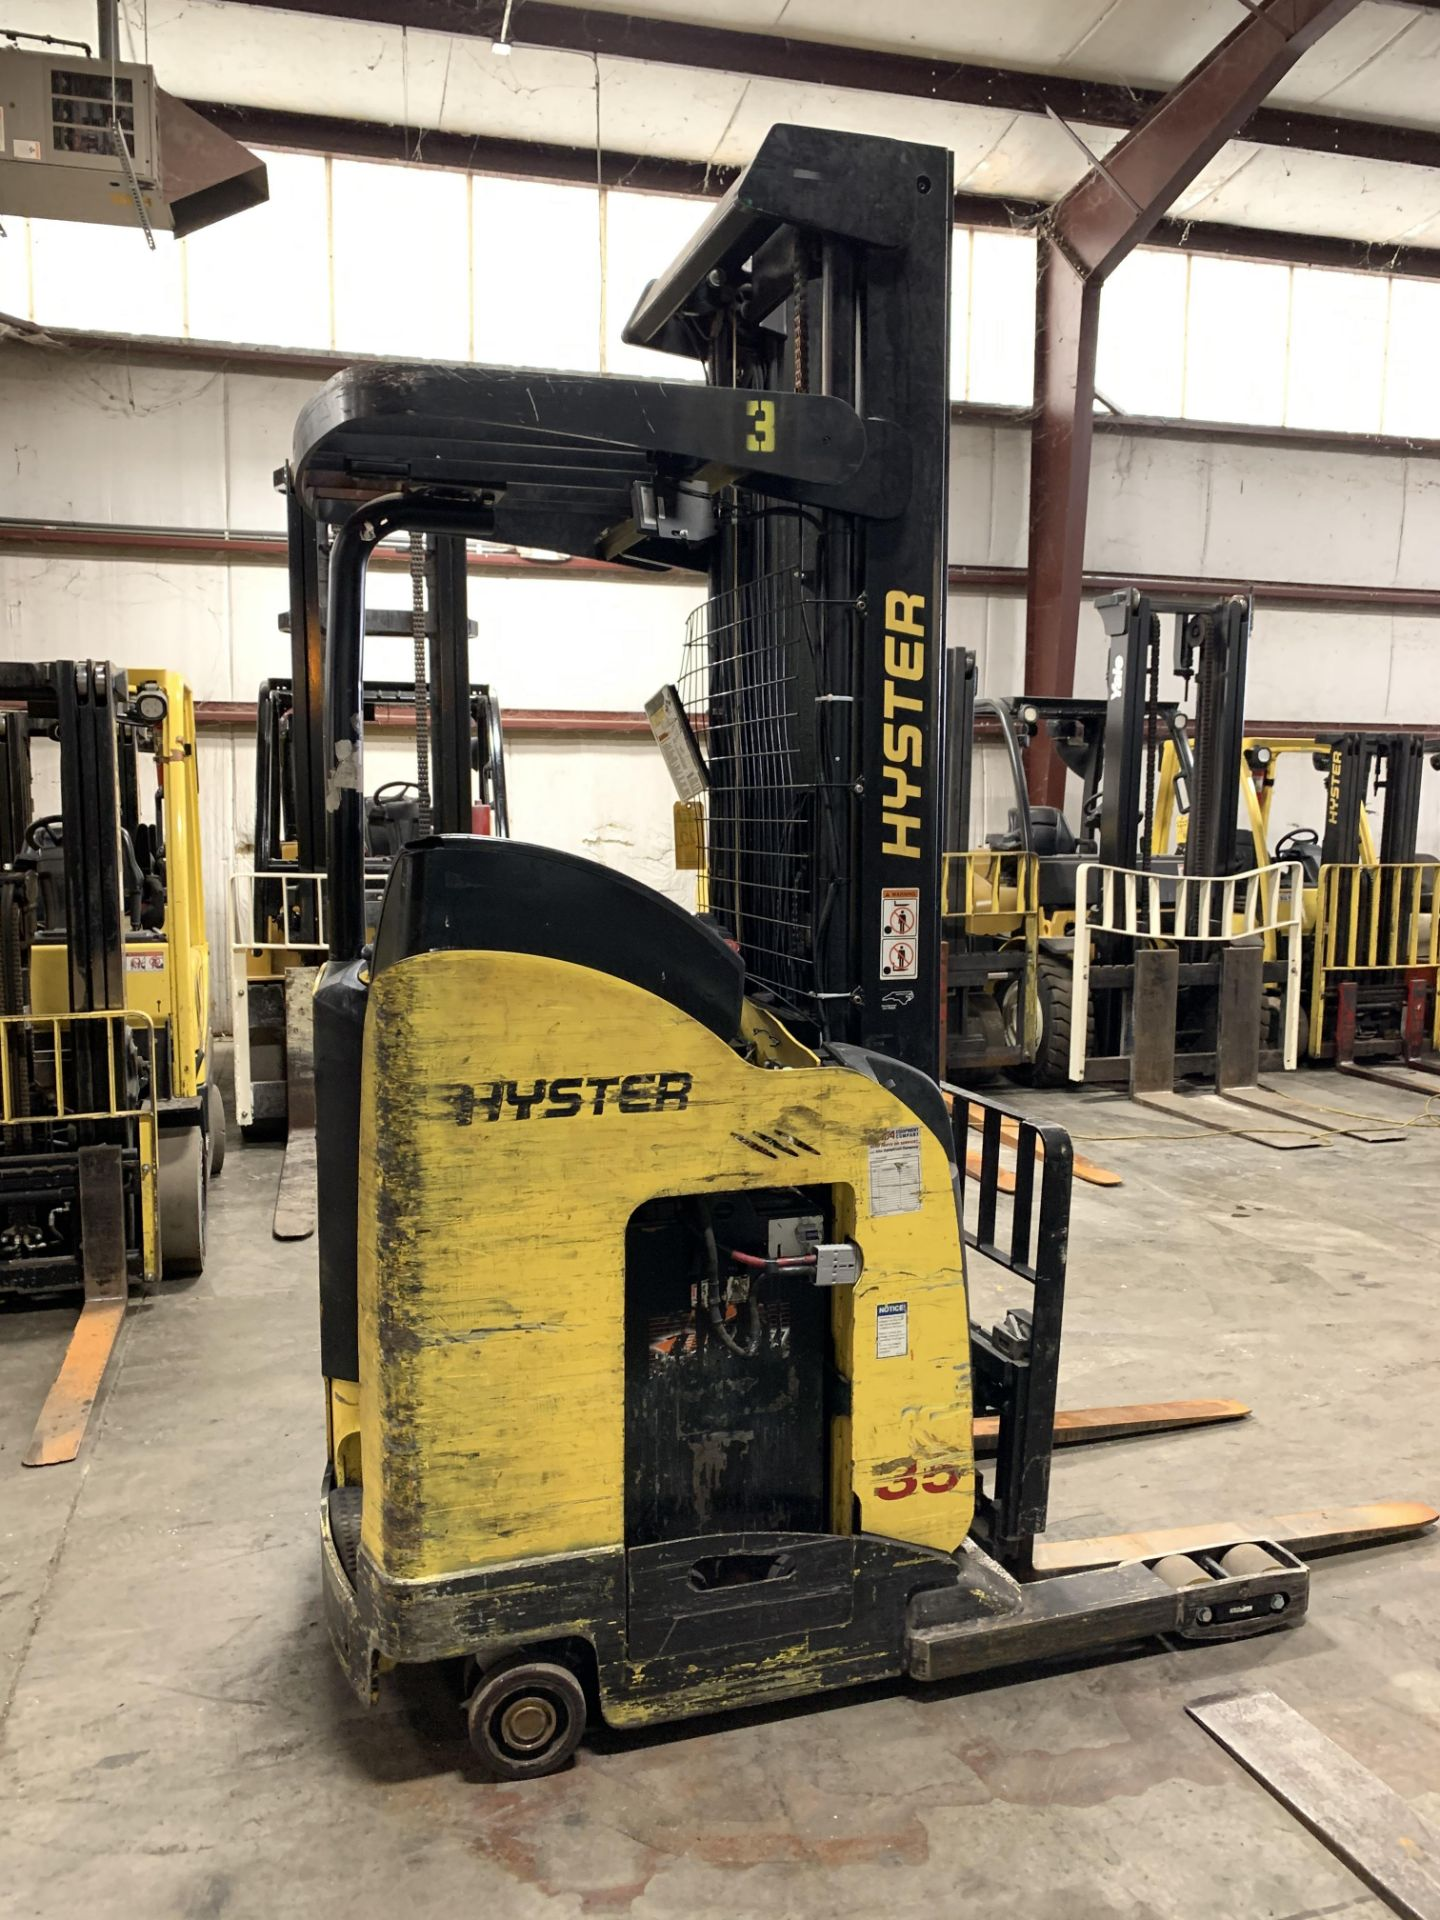 """*LOCATED IN OHIO* 2015 HYSTER 3,500-LB. CAPACITY REACH TRUCK, MOD NR35, 111"""" LOWER/251'' LIFT HEIGHT - Image 3 of 7"""